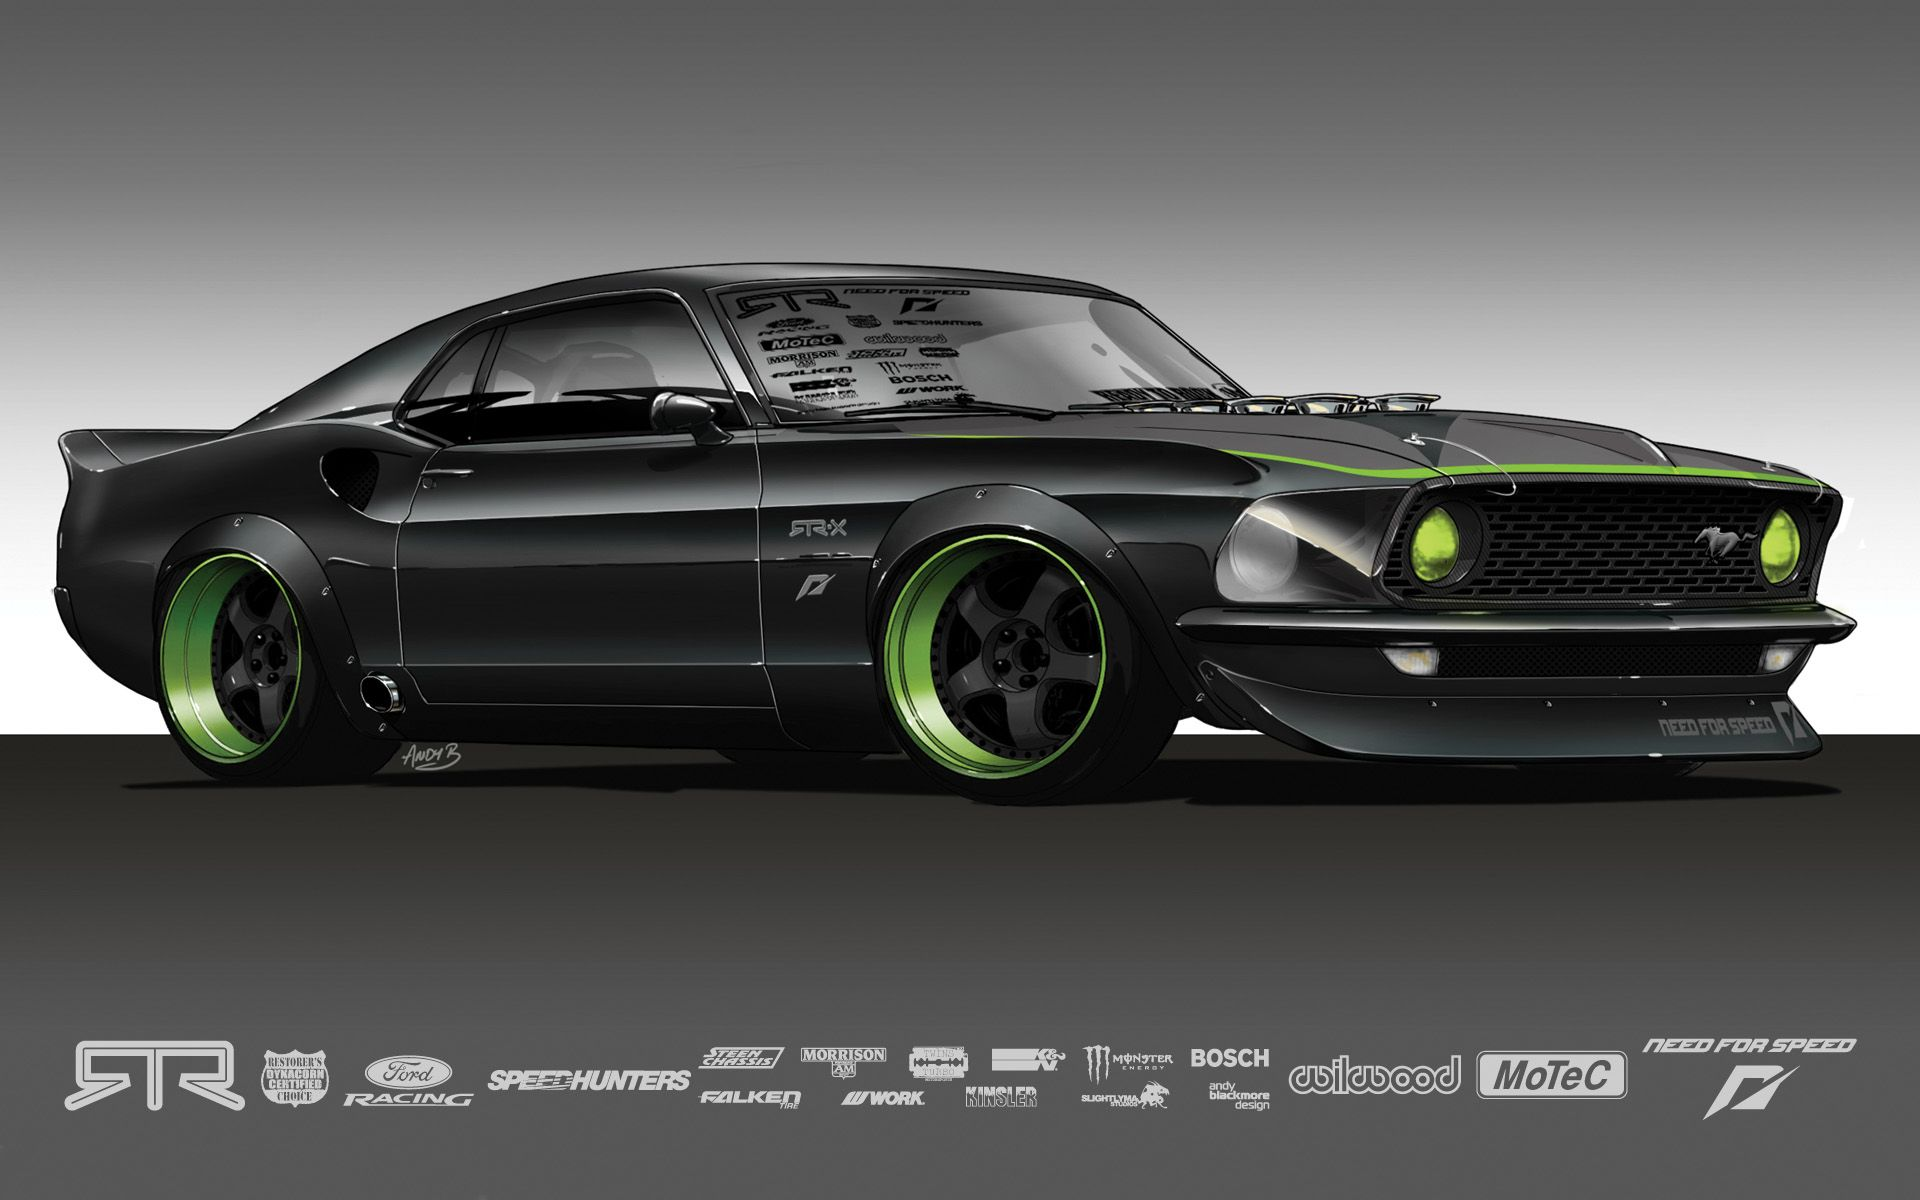 Rtrx Concept Ford Mustang 1969 Ford Mustang Mustang